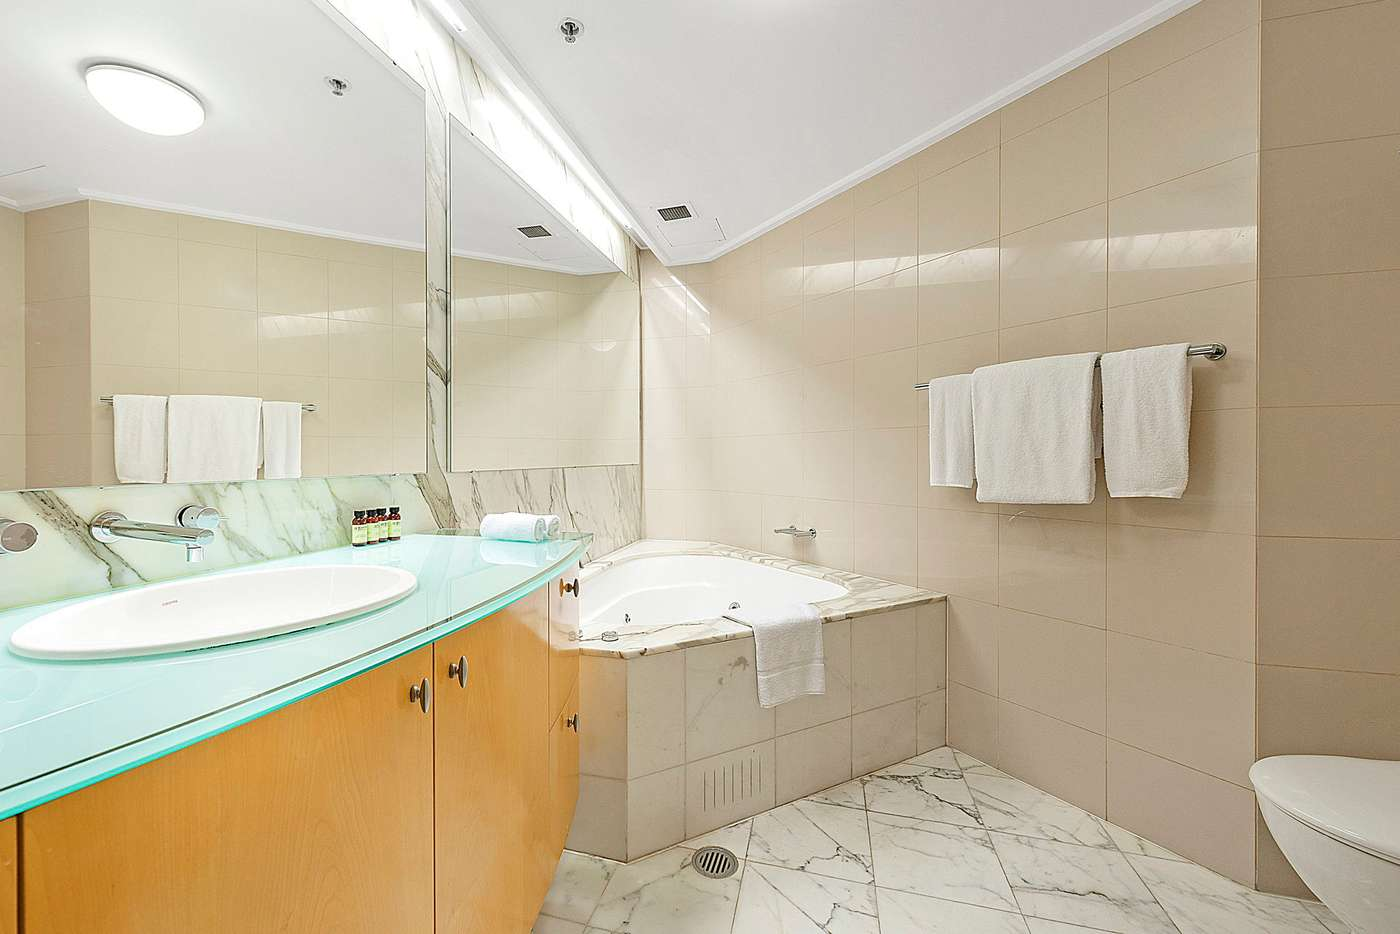 Sixth view of Homely apartment listing, 613/61 Macquarie Street, Sydney NSW 2000